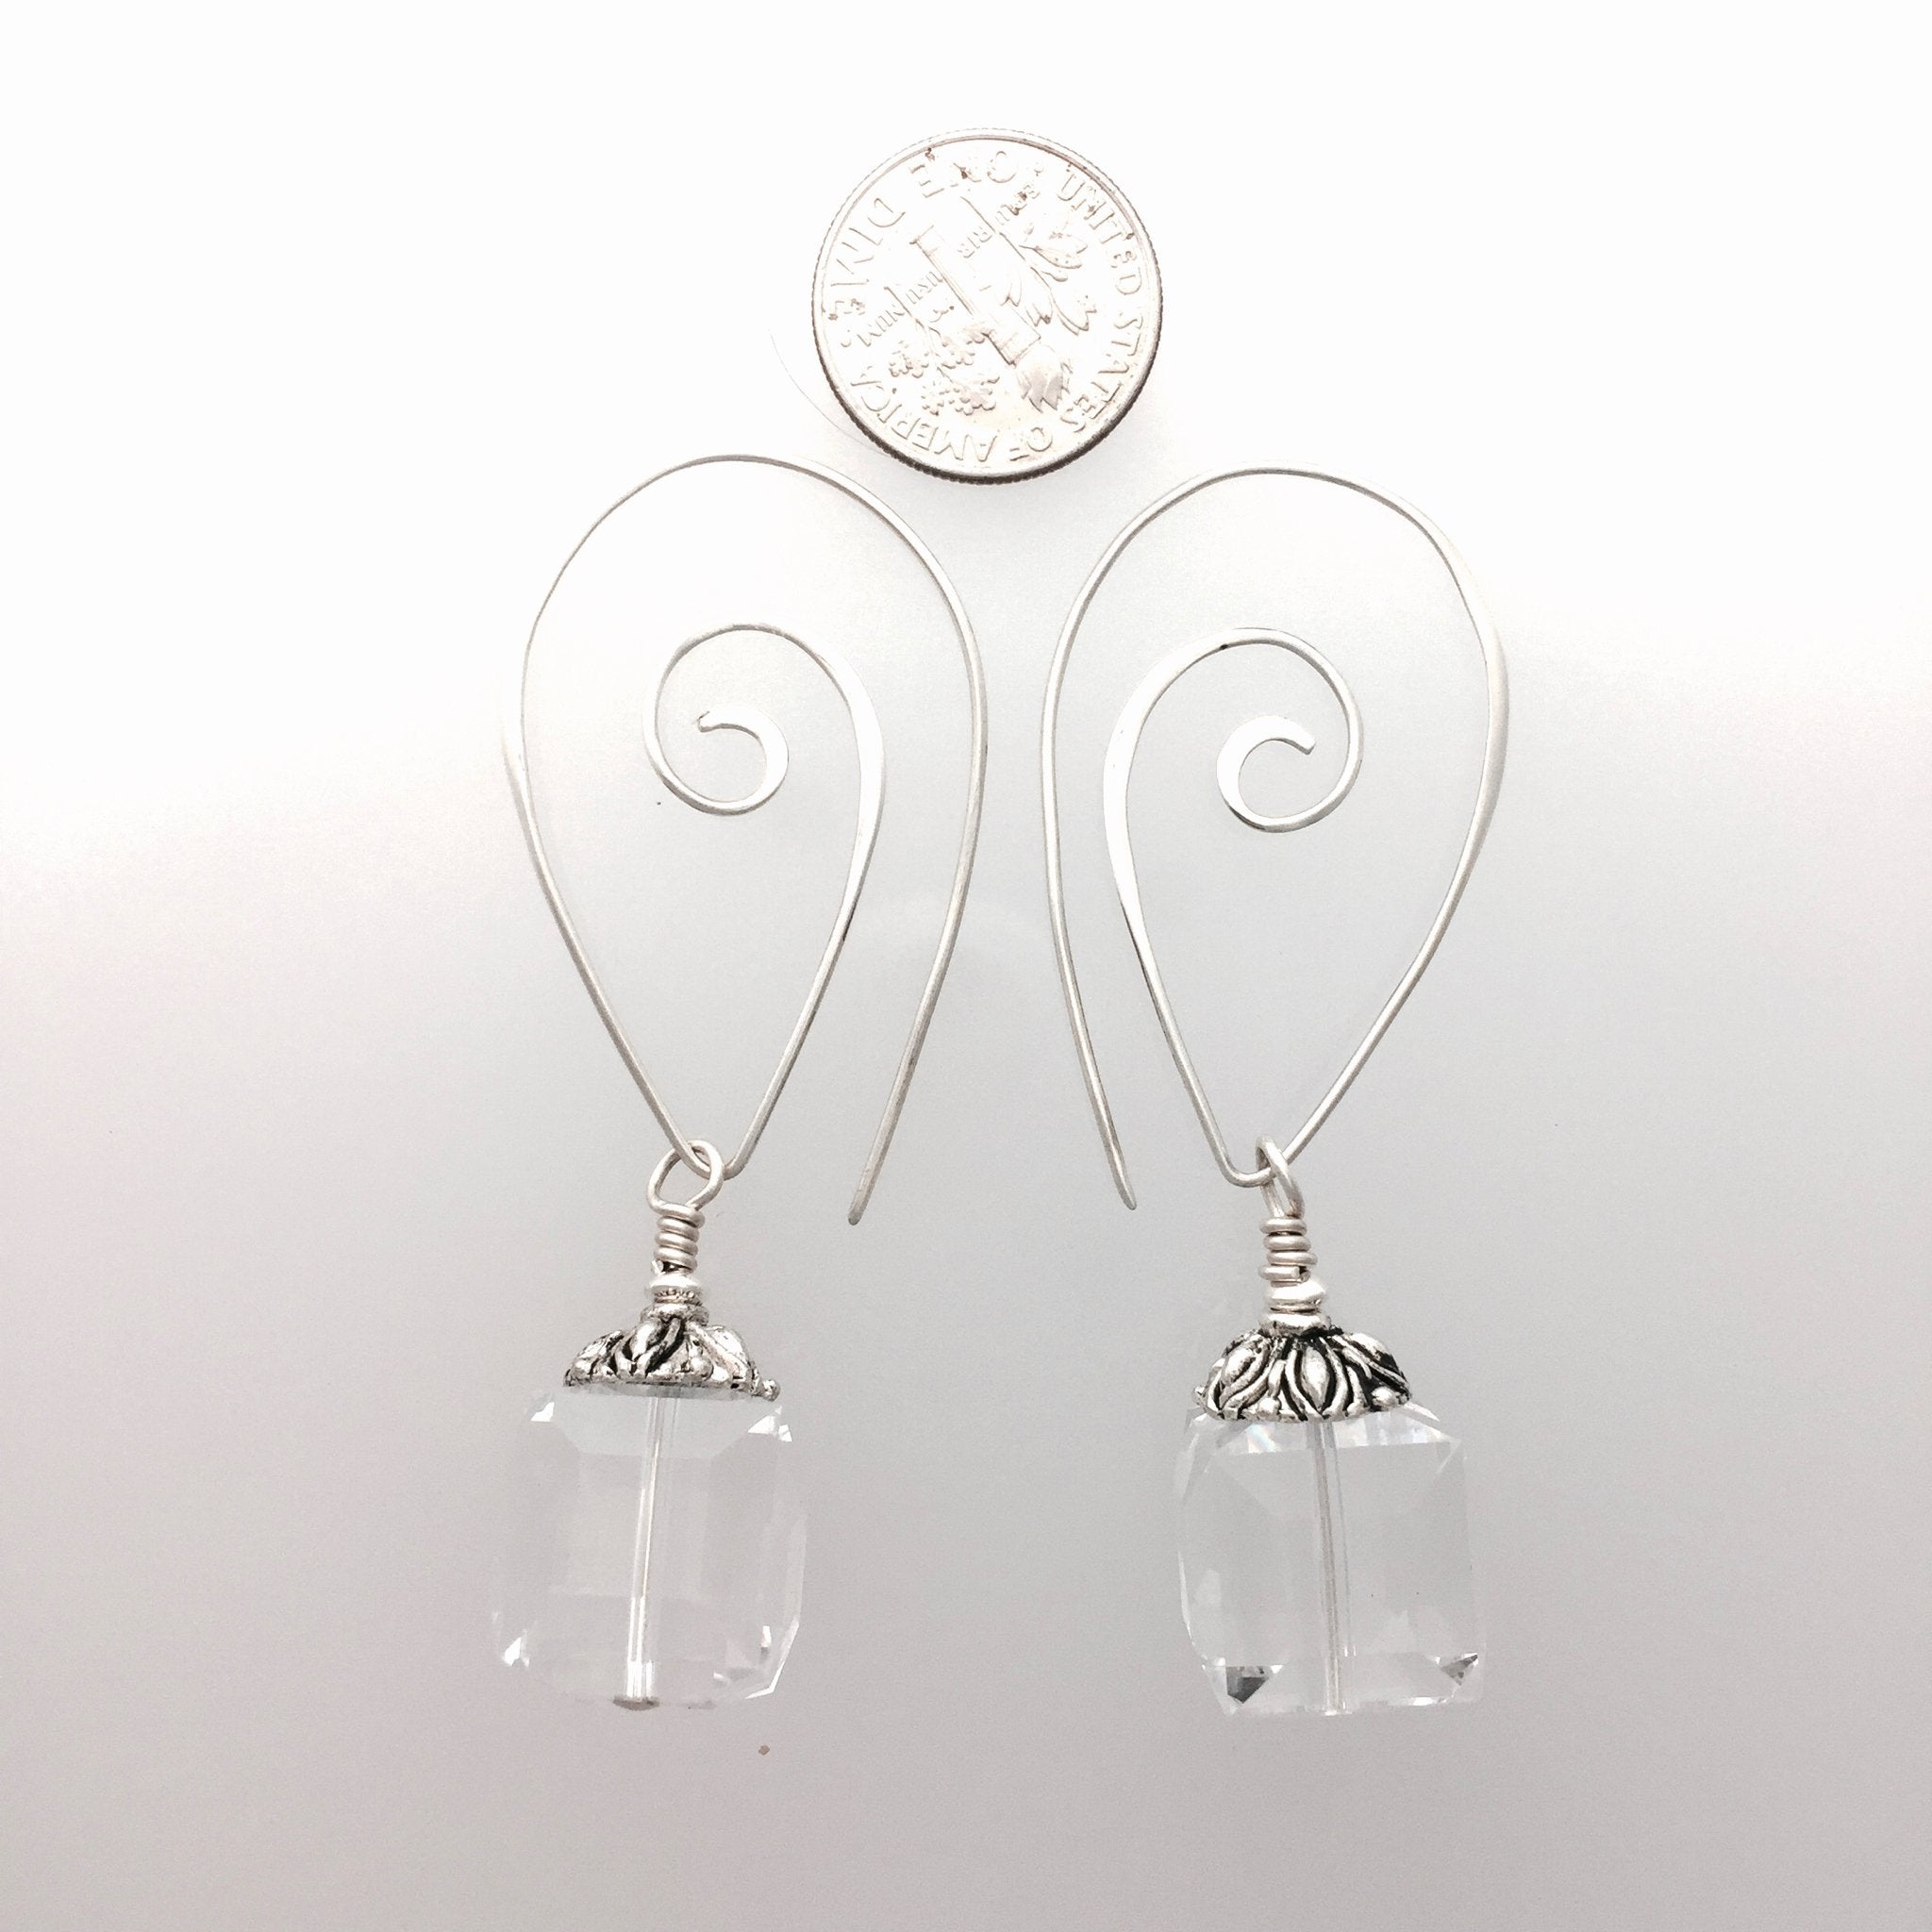 Swarovski Crystal Vintage 14mm Cube Earrings